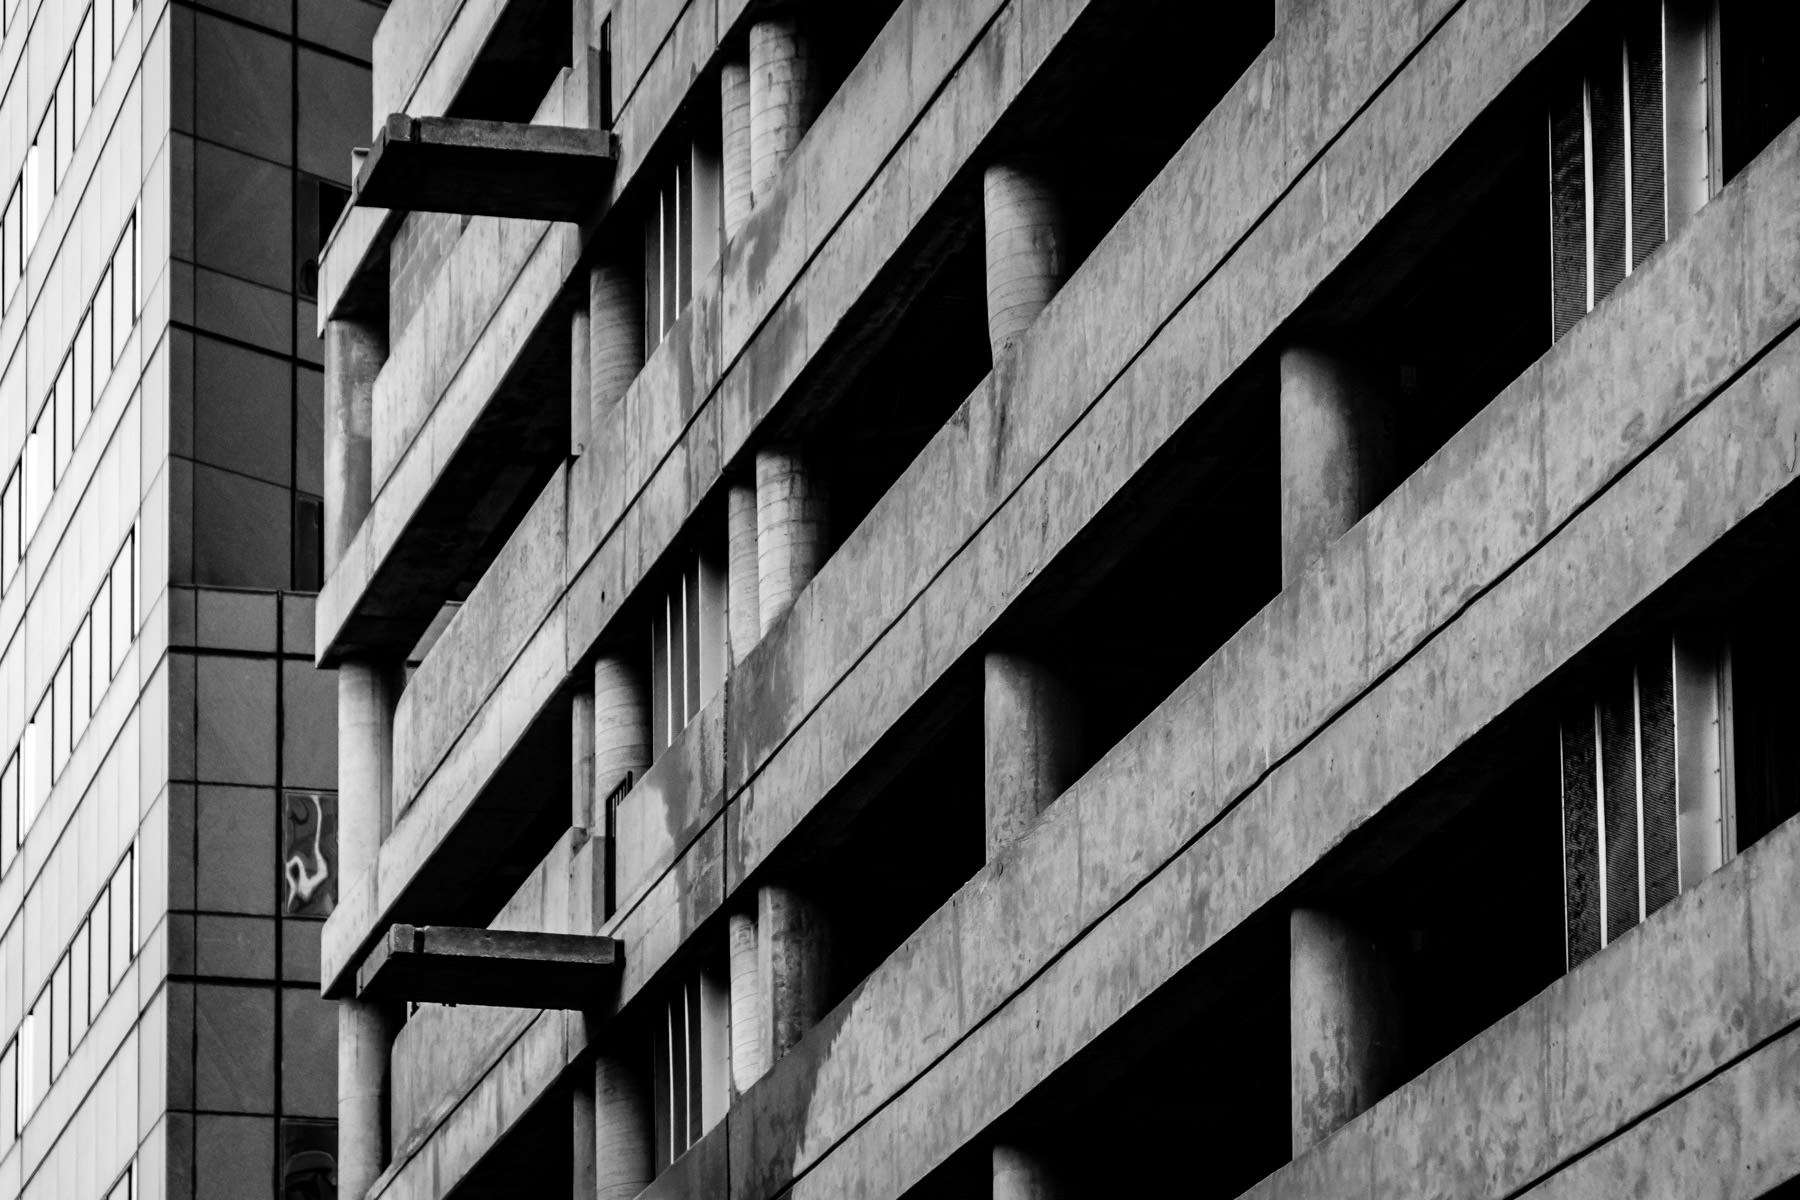 An abstracted view of the exterior of a Downtown Dallas parking garage.